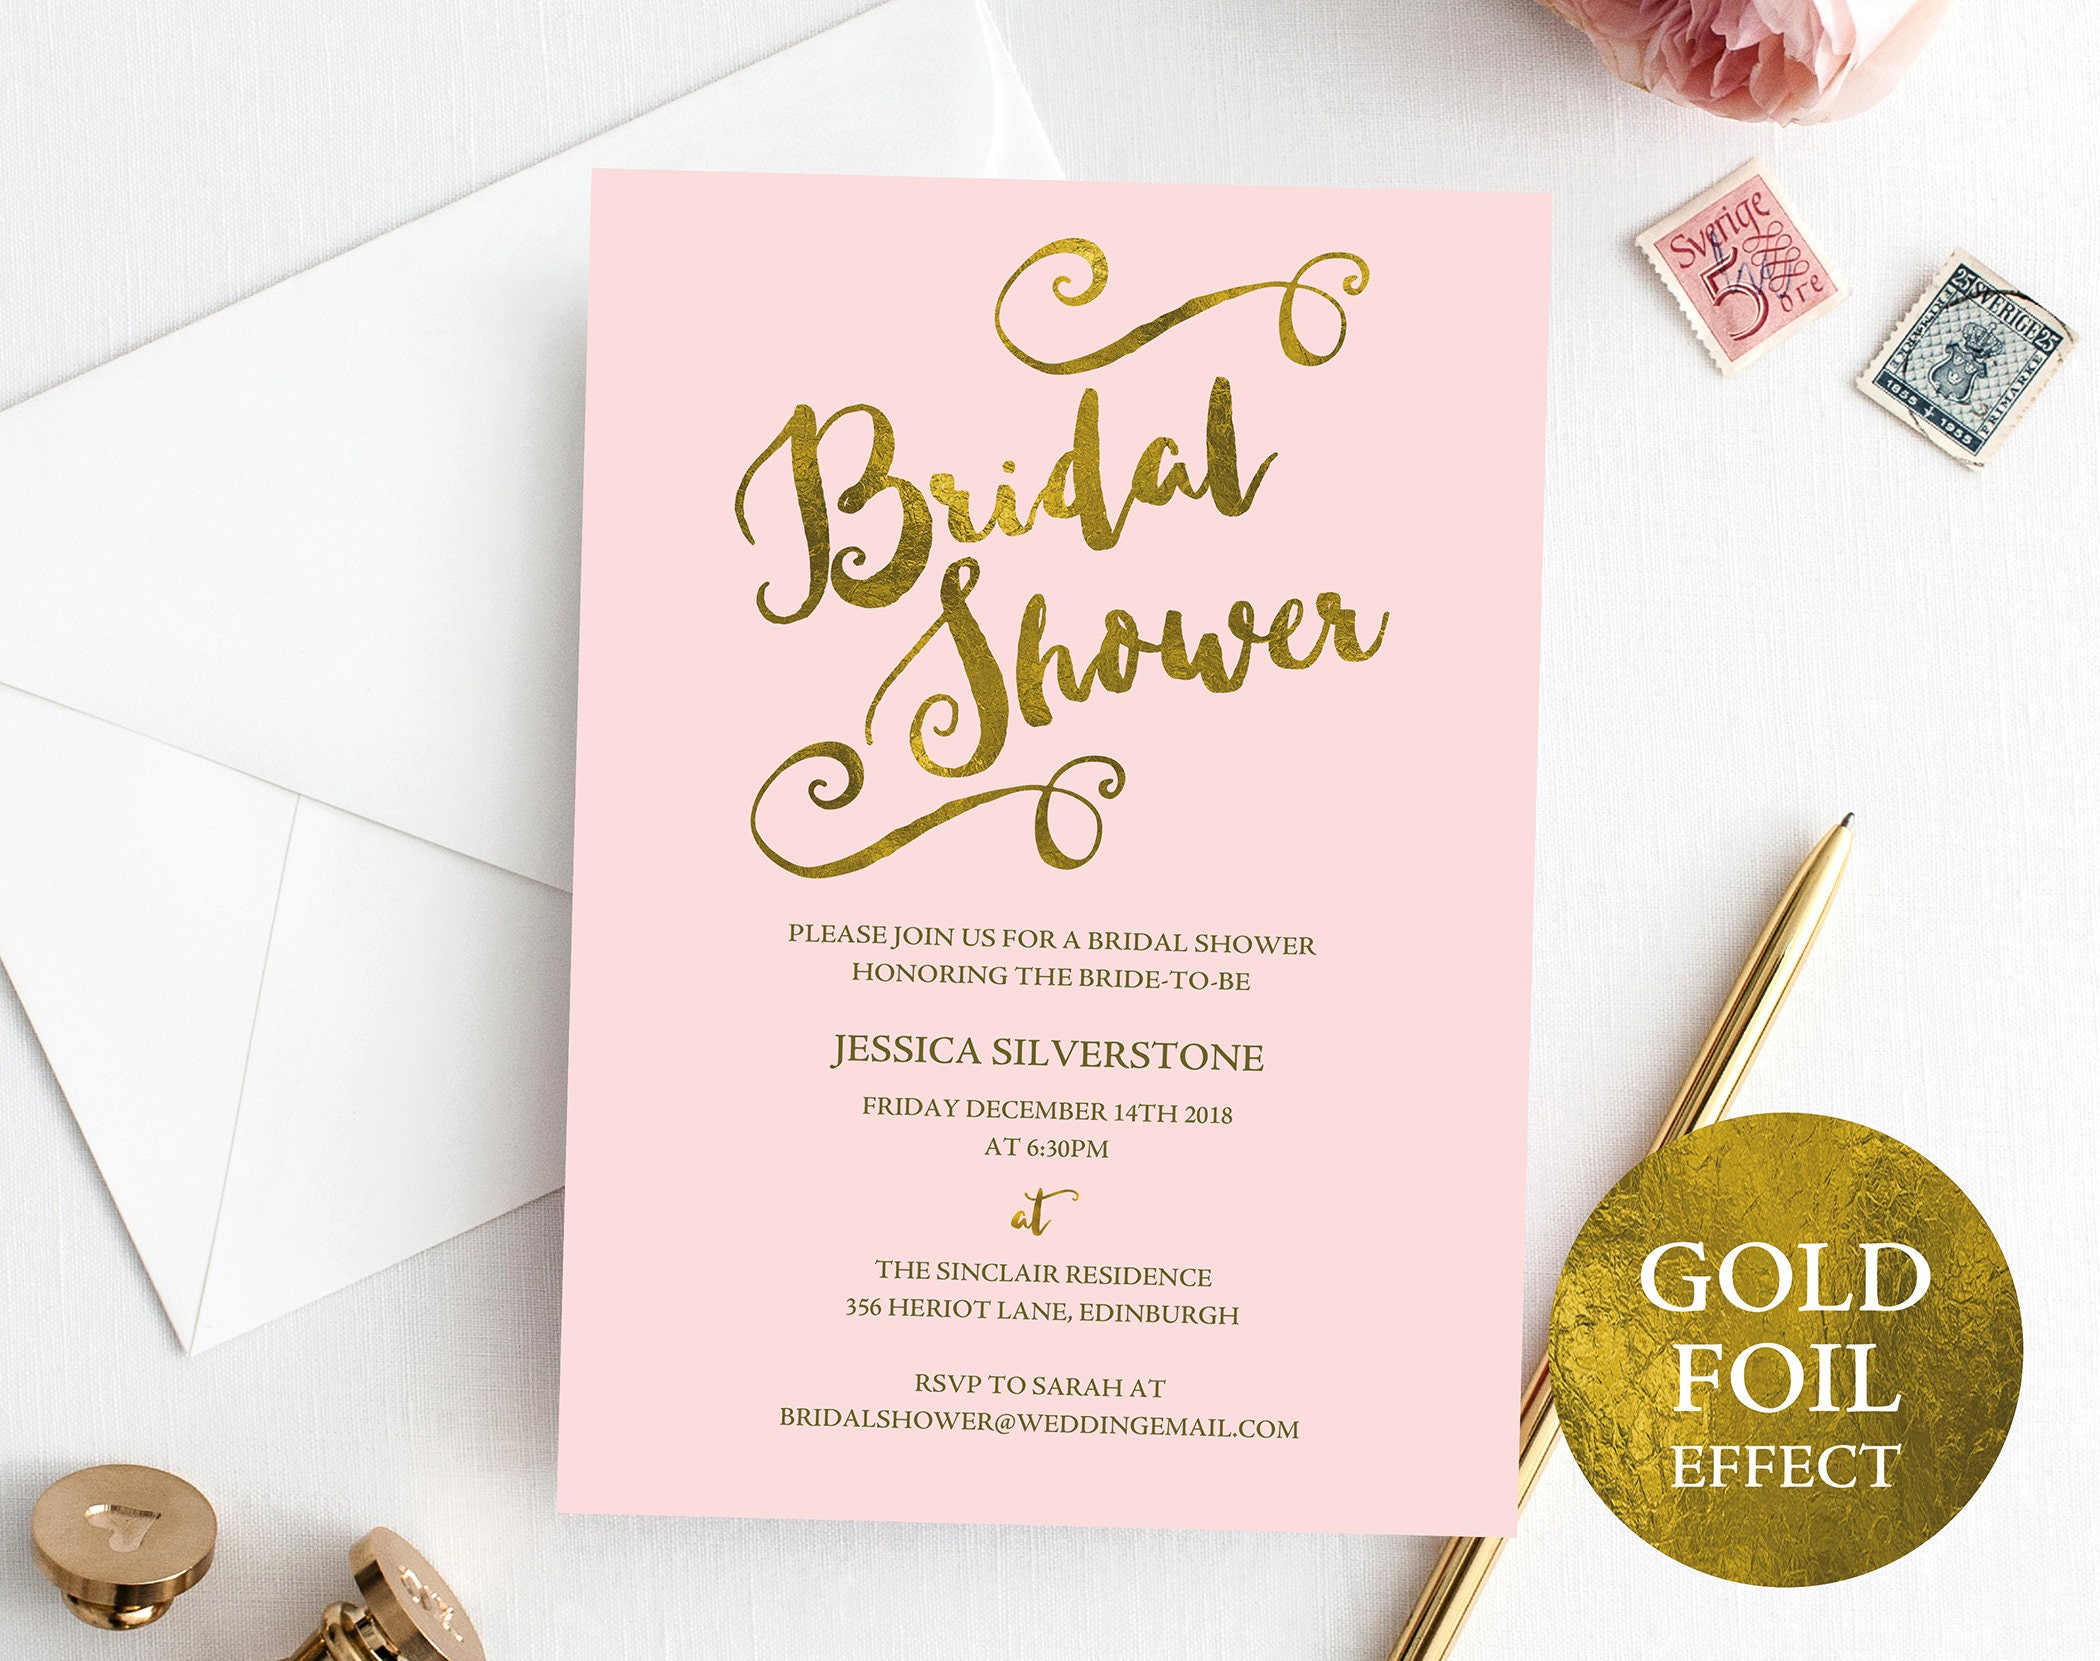 Blush and Gold Bridal Shower Invite Bridal Shower Invitation Wedding Shower Wedding Printable Printable Invite Instant Download MM04